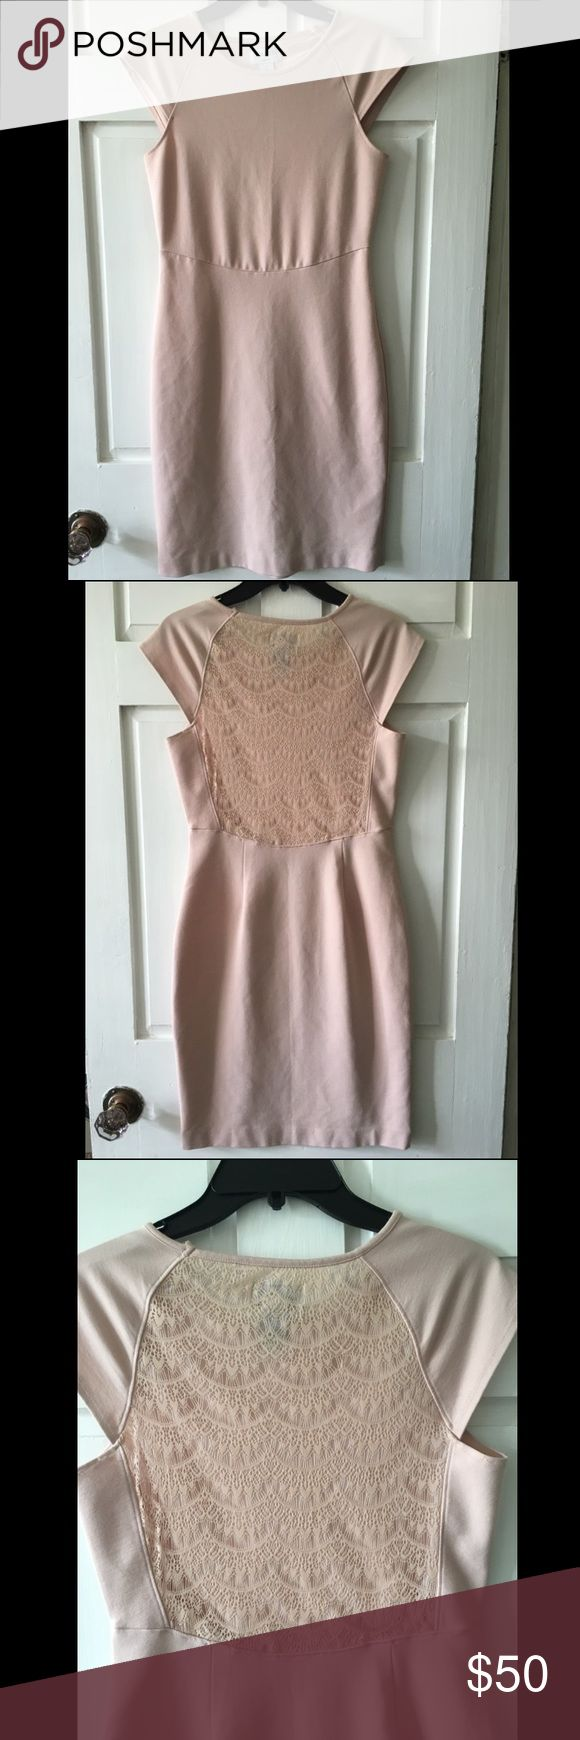 Blush Carmen Marc Valvo lace back dress Beautiful blush colored Carmen Marc Valvo dress with lace detailing in back. Super comfortable and very lightly worn! ✨ I am moving and would hate to throw out- offers accepted! Carmen Marc Valvo Dresses Midi